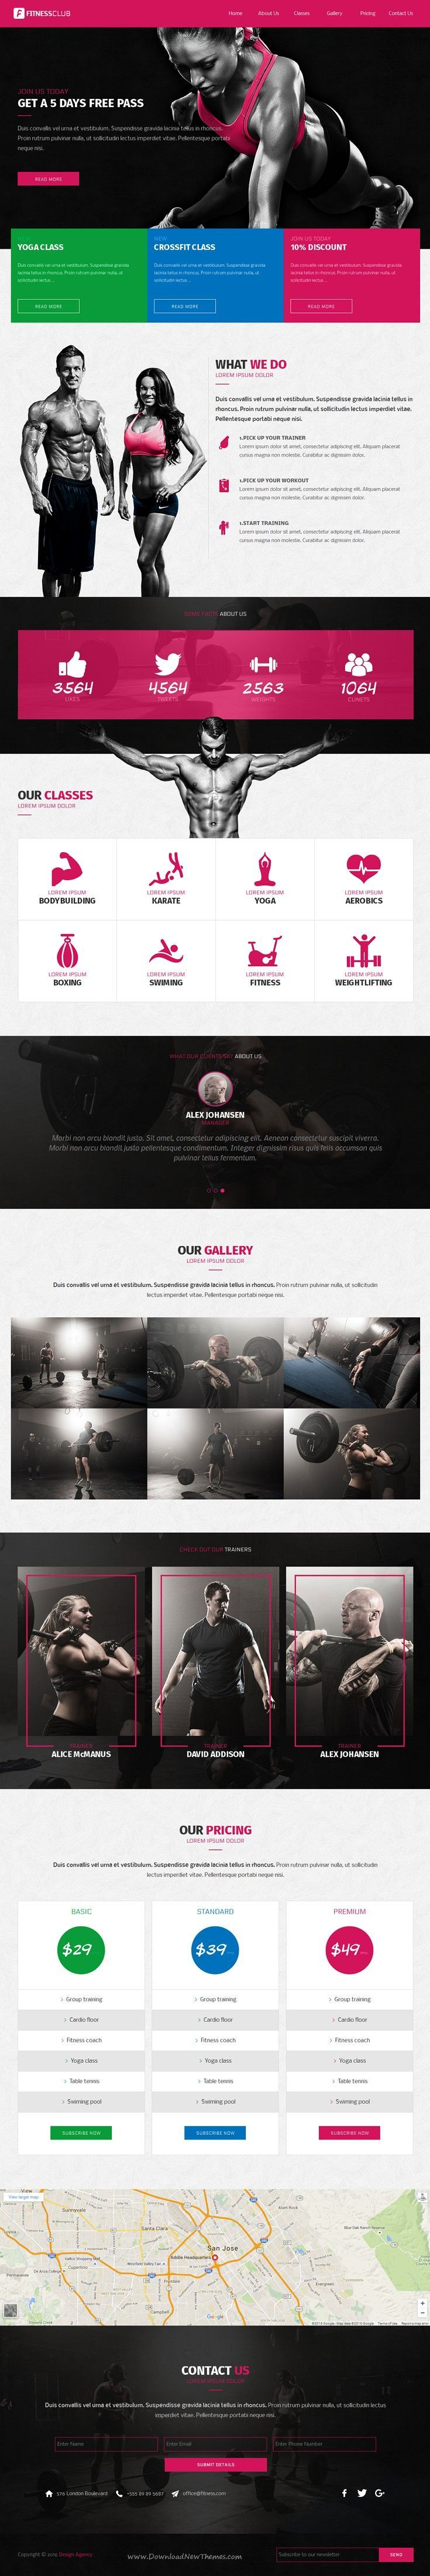 Fitness Club is a clean and modern looking, responsive one page #website template built with Adobe #Muse. It has a sport, #fitness, aerobics, body building #gym related theme but it can be easily adjusted to fit well with any kind of topic.